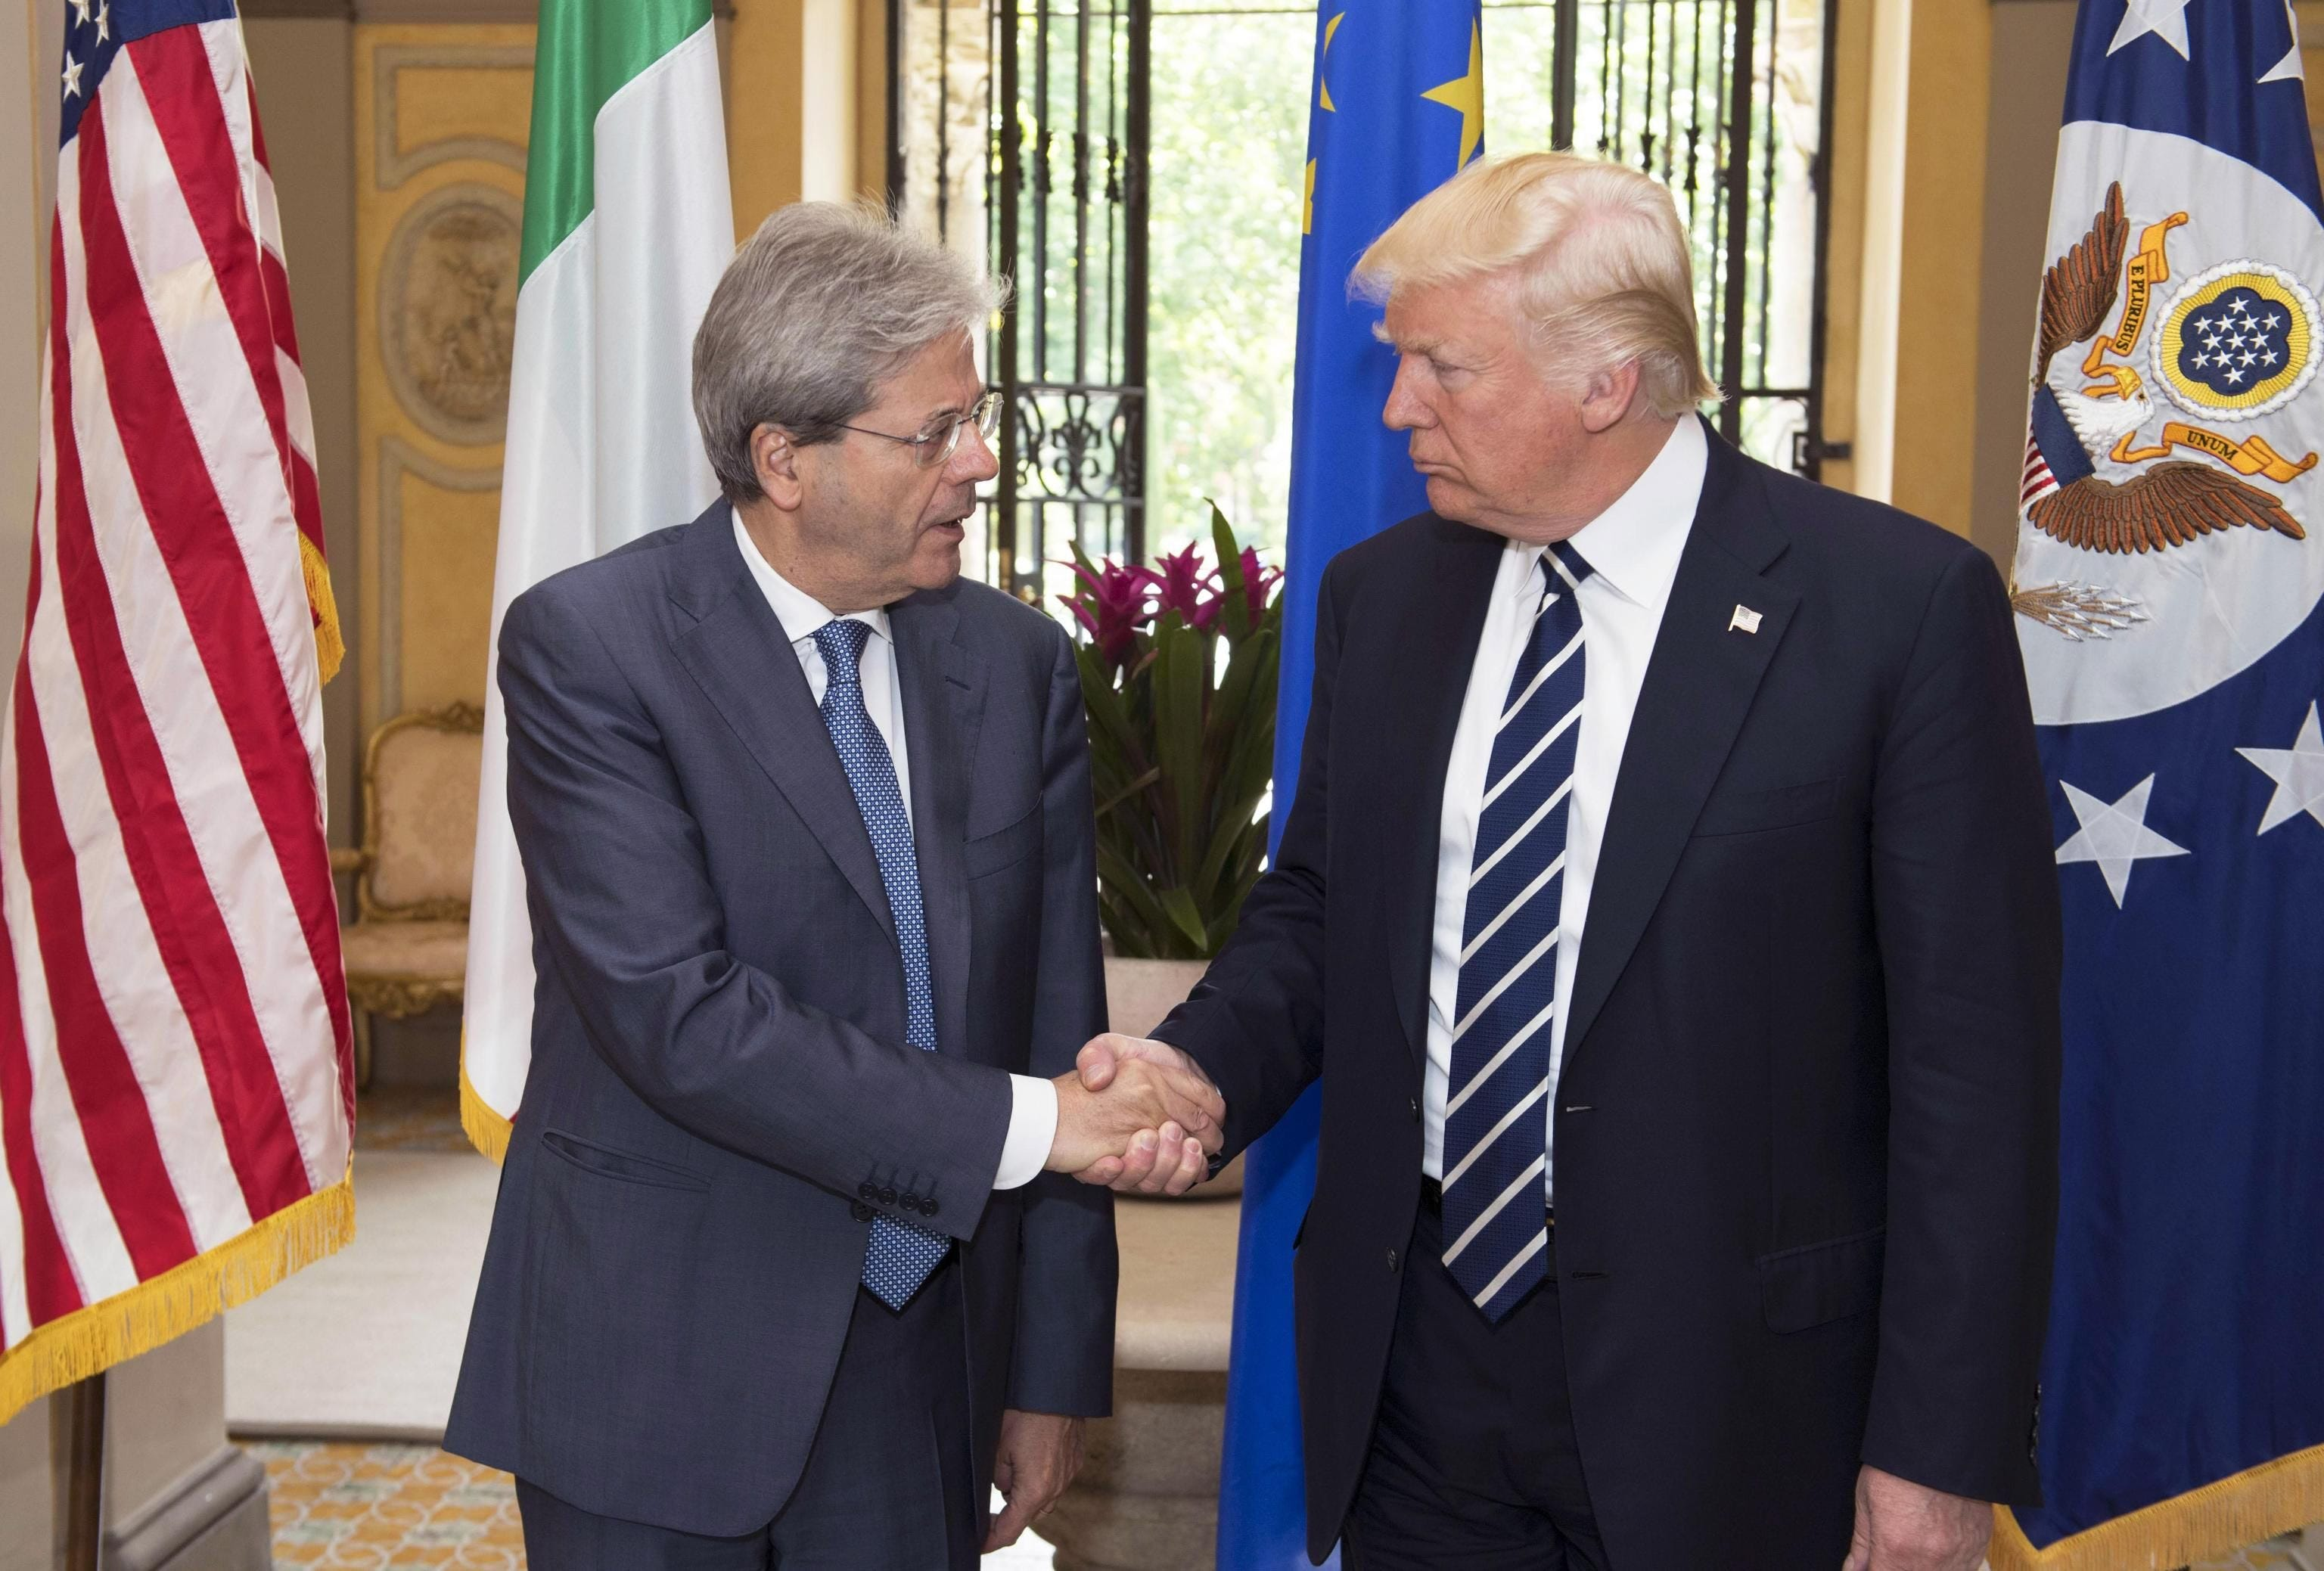 Italy's prime minister lobbies Trump to open U.S. to more migrants